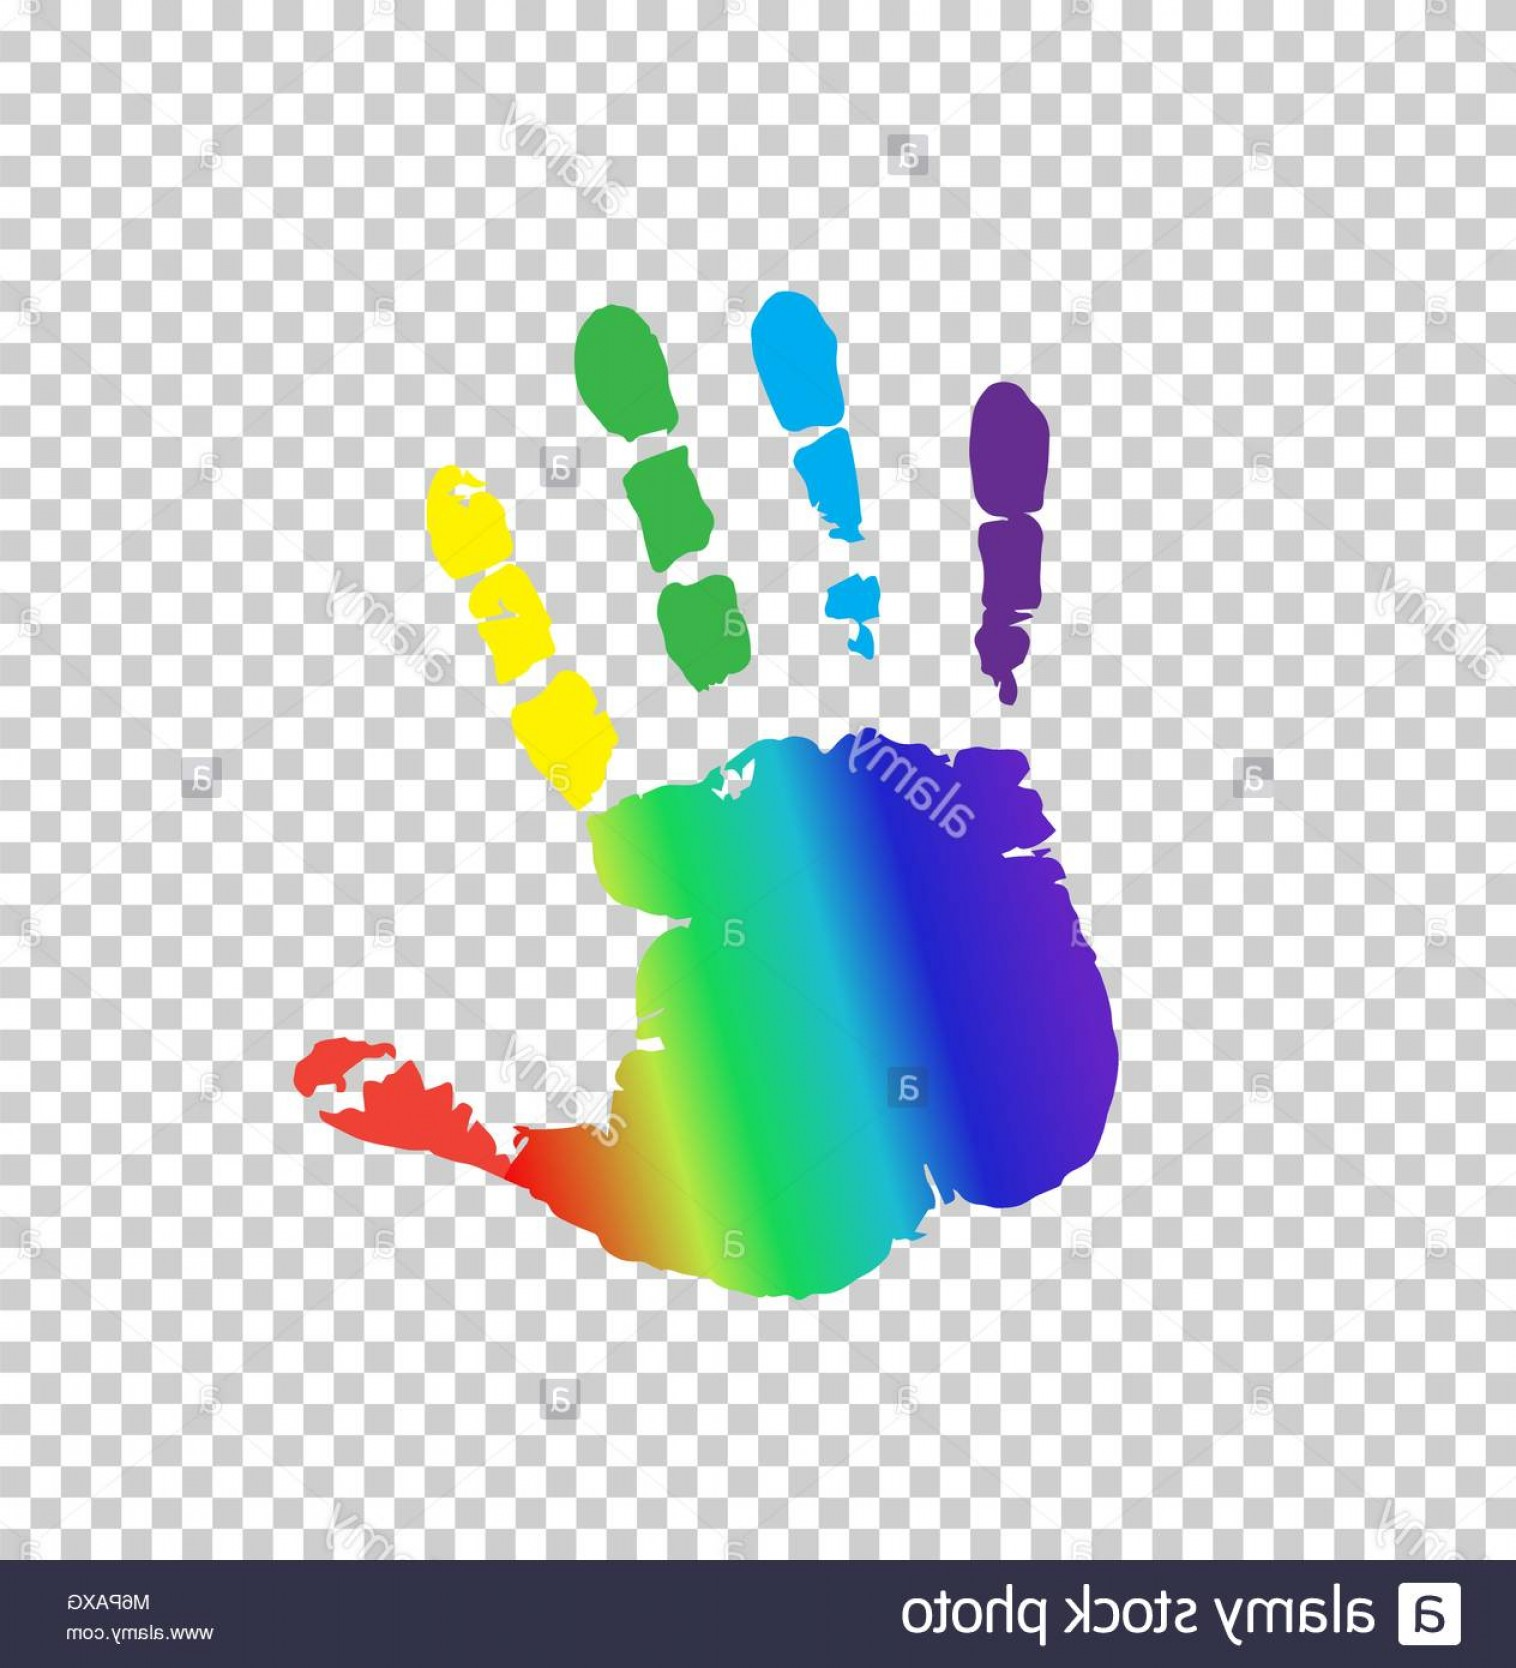 Hand Prints Vector Transparent Background: Stock Photo Rainbow Multicolored Silhouette Of Human Handprint Isolated On Transparent